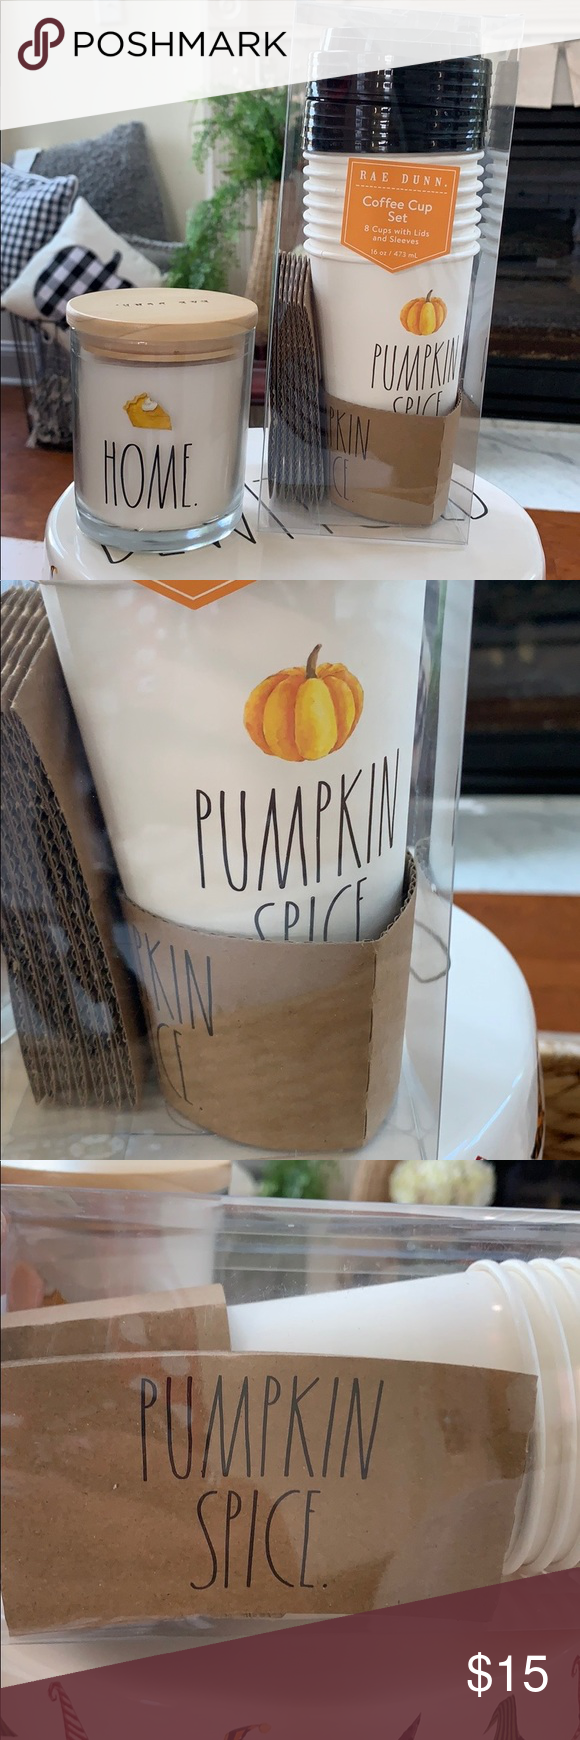 Rae Dunn Pumpkin Spice coffee cups NWT (With images